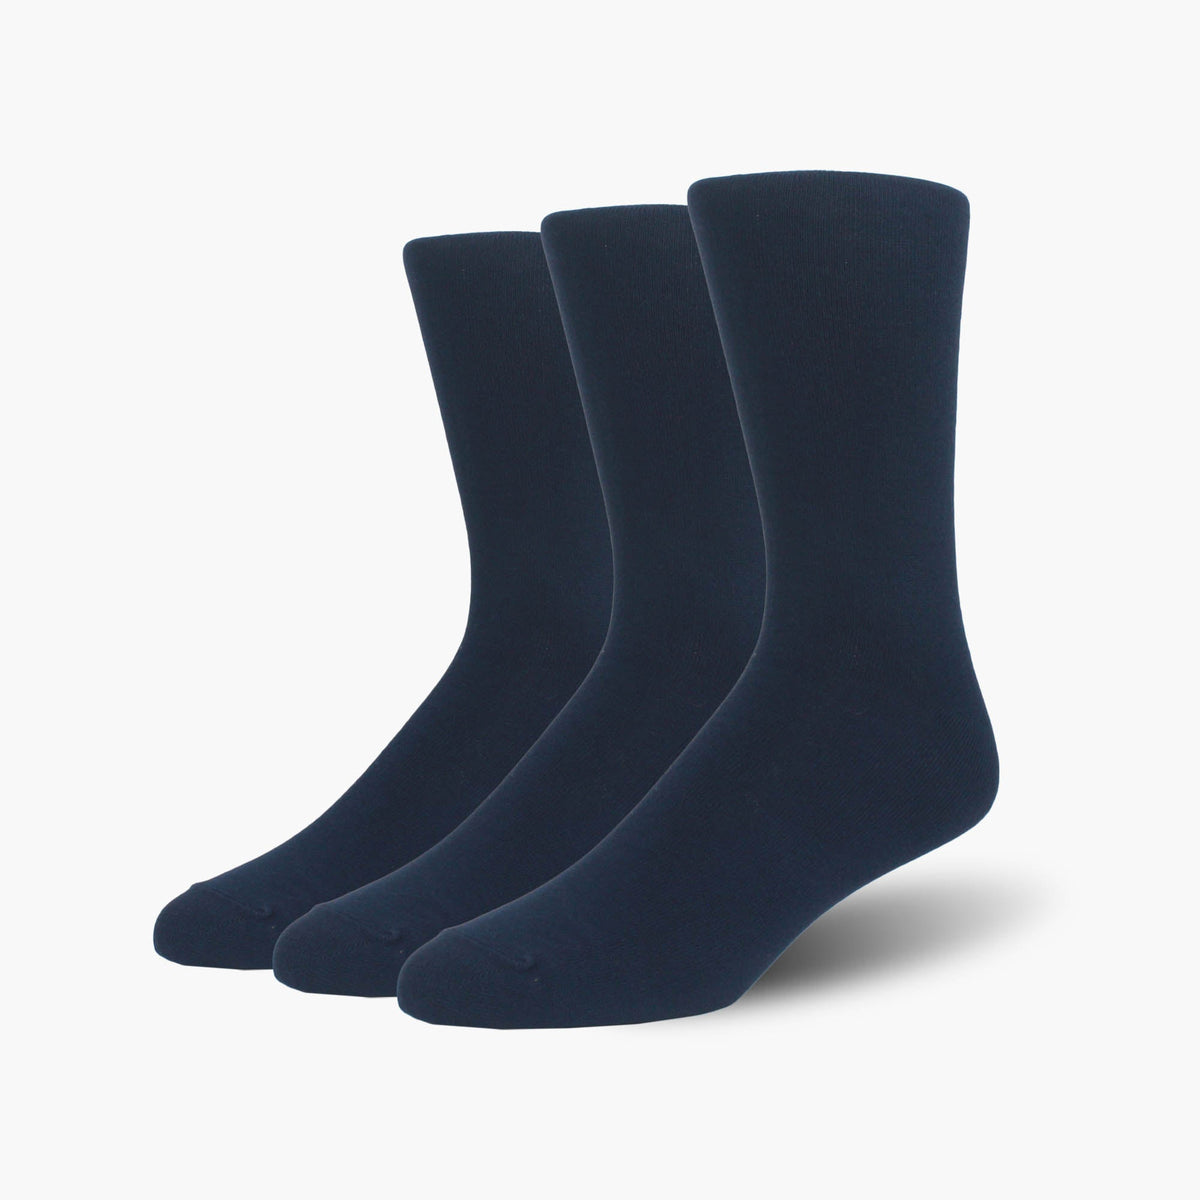 Navy Bamboo Crew Length Swanky Socks 3 Pack